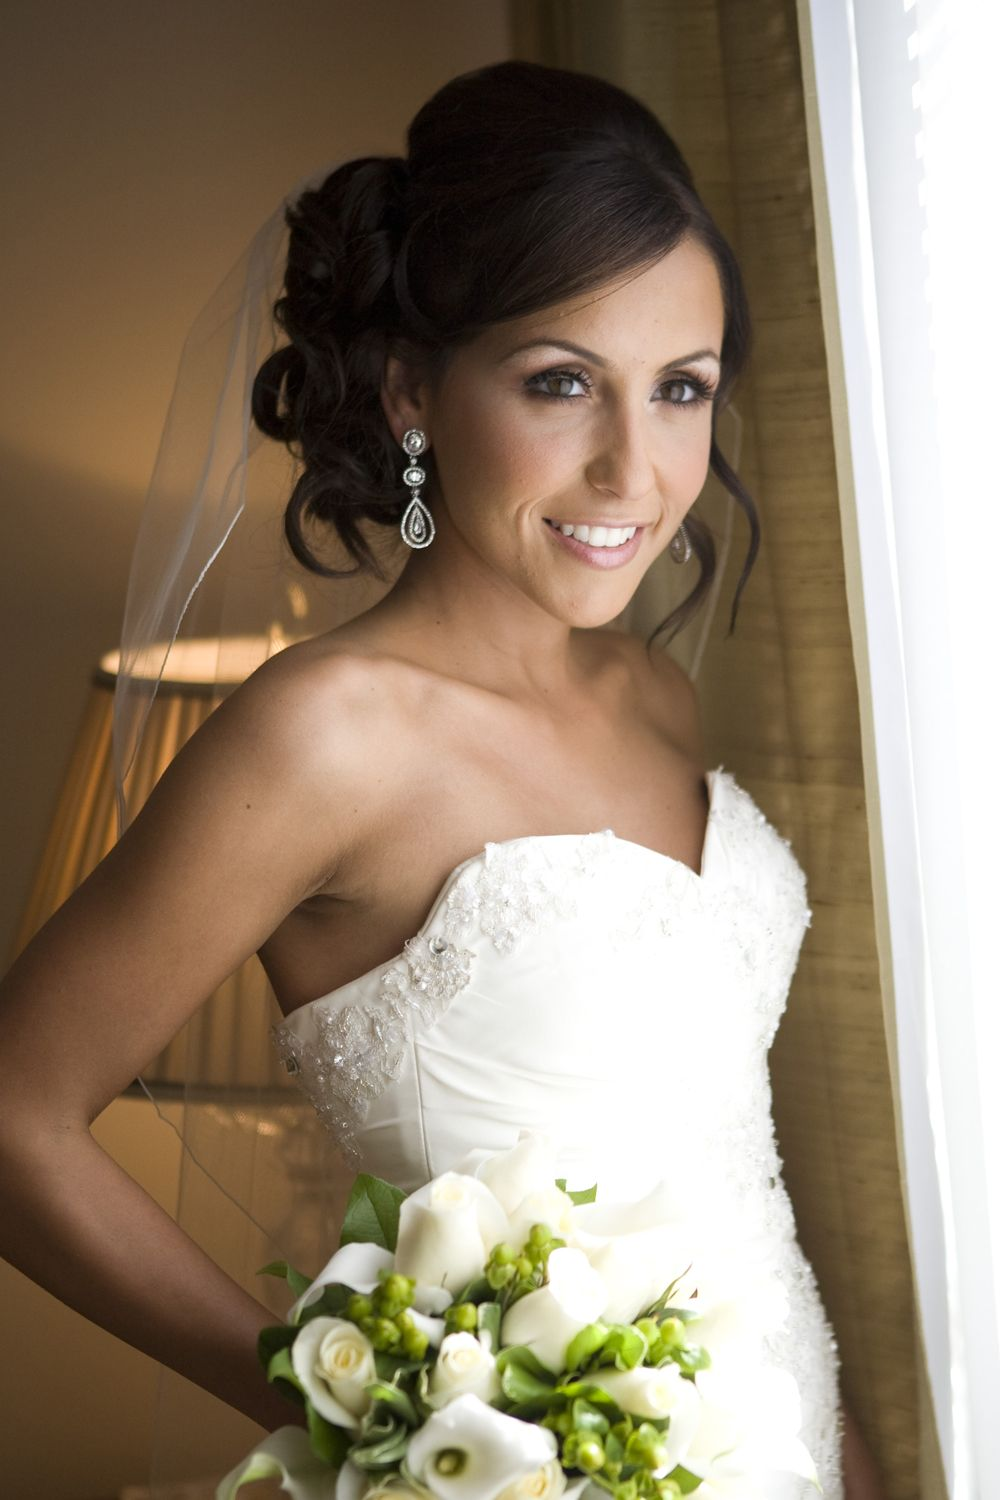 Wedding Makeup Ideas For Brunettes : wedding makeup for brunettes - Google Search The Dangs ...